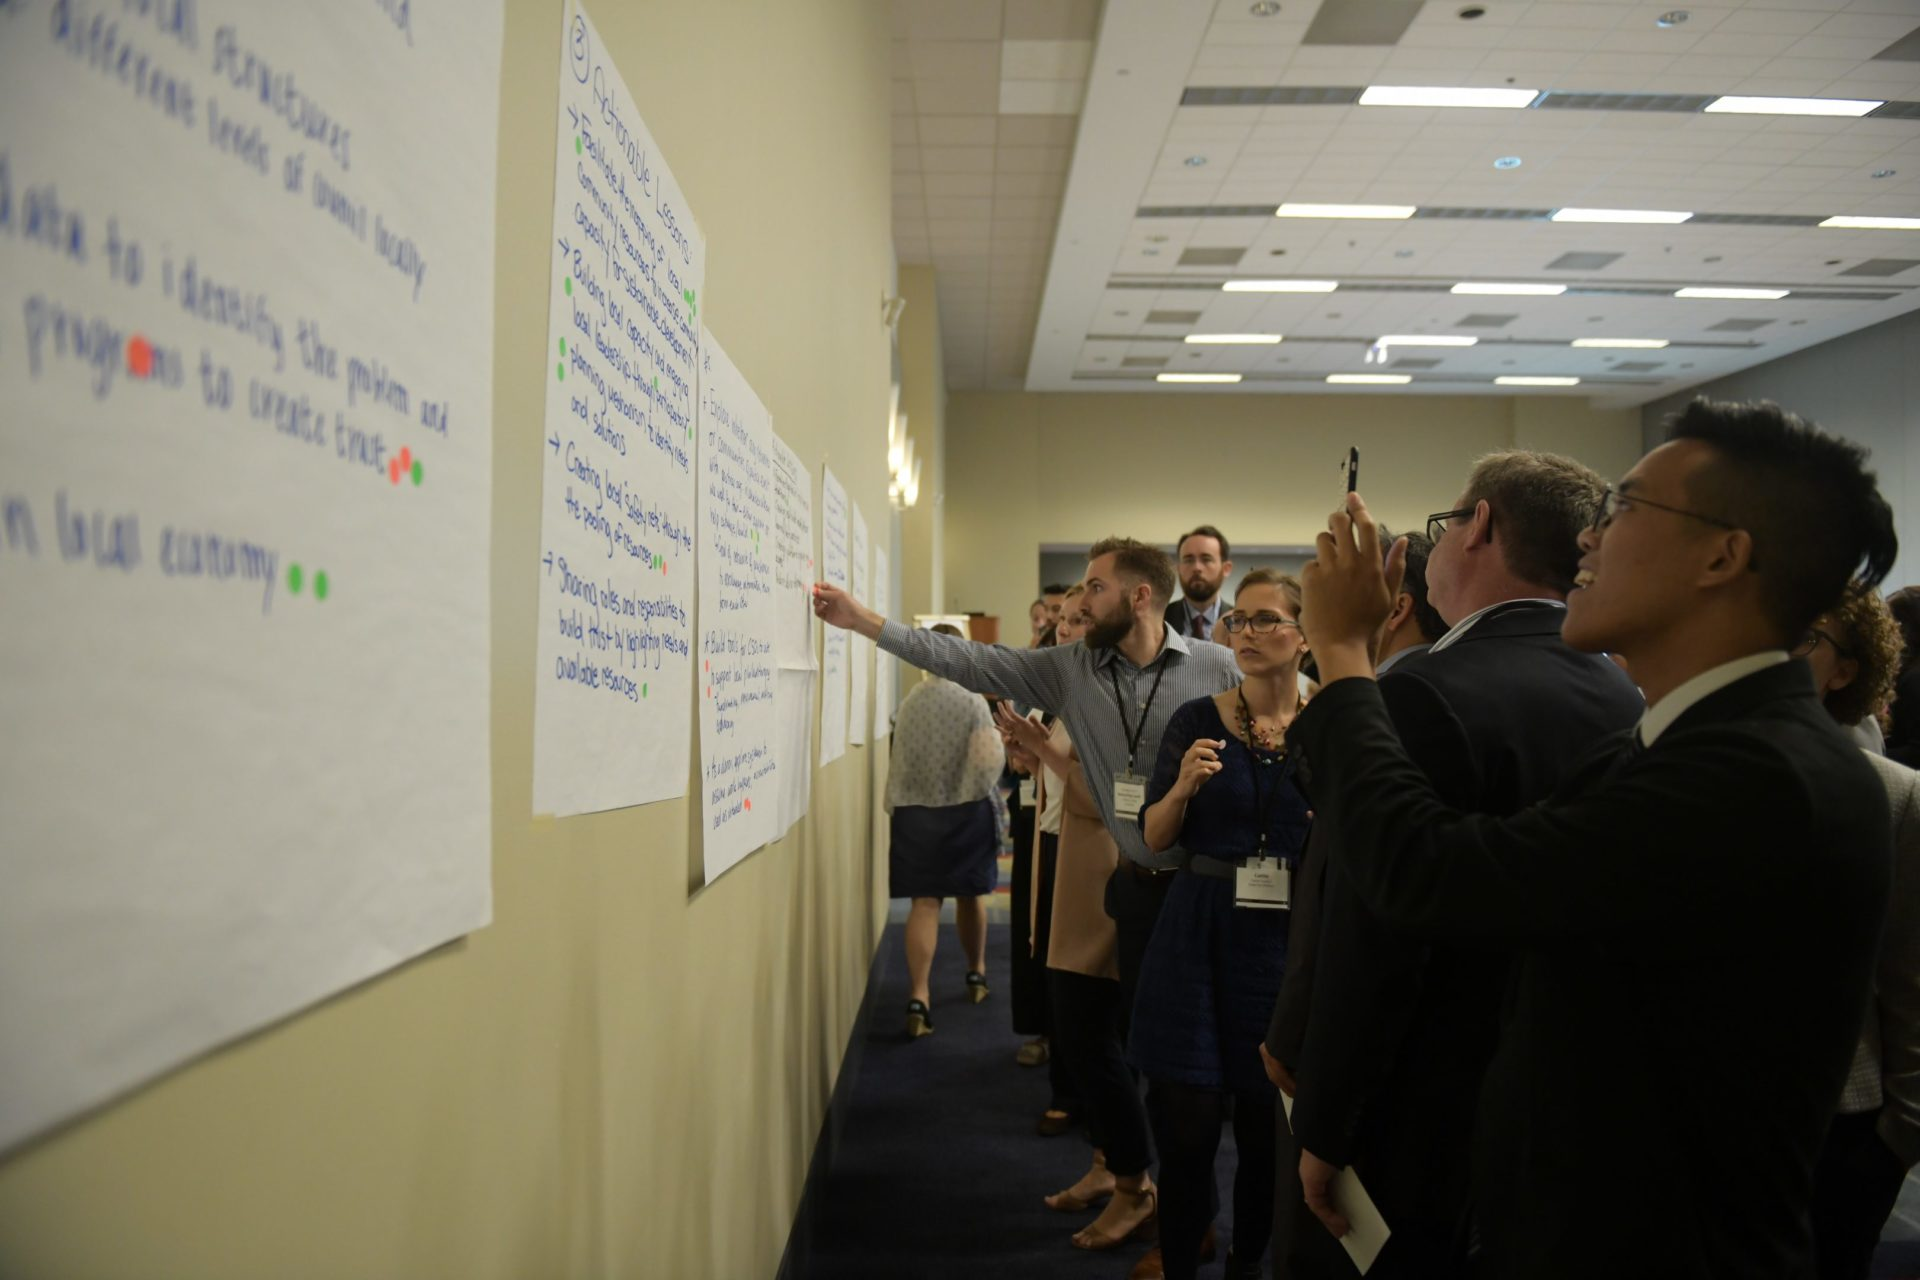 Participants standing at a wall. Wall covered in poster paper where participants are jotting down notes.